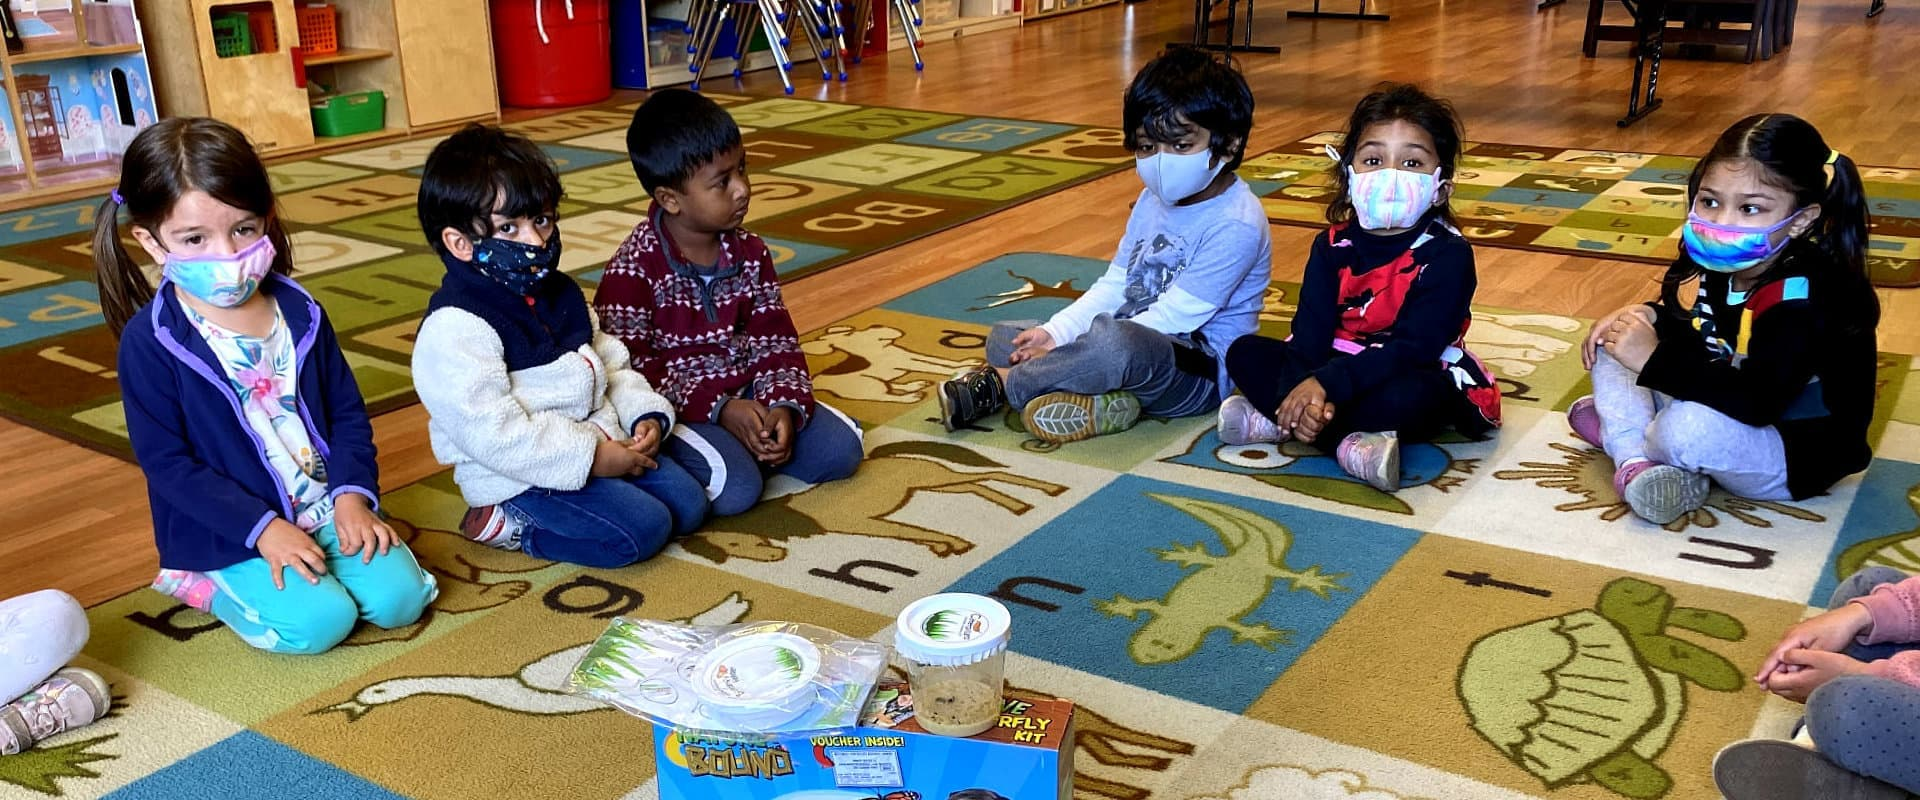 a group of kids sitting and wearing face mask